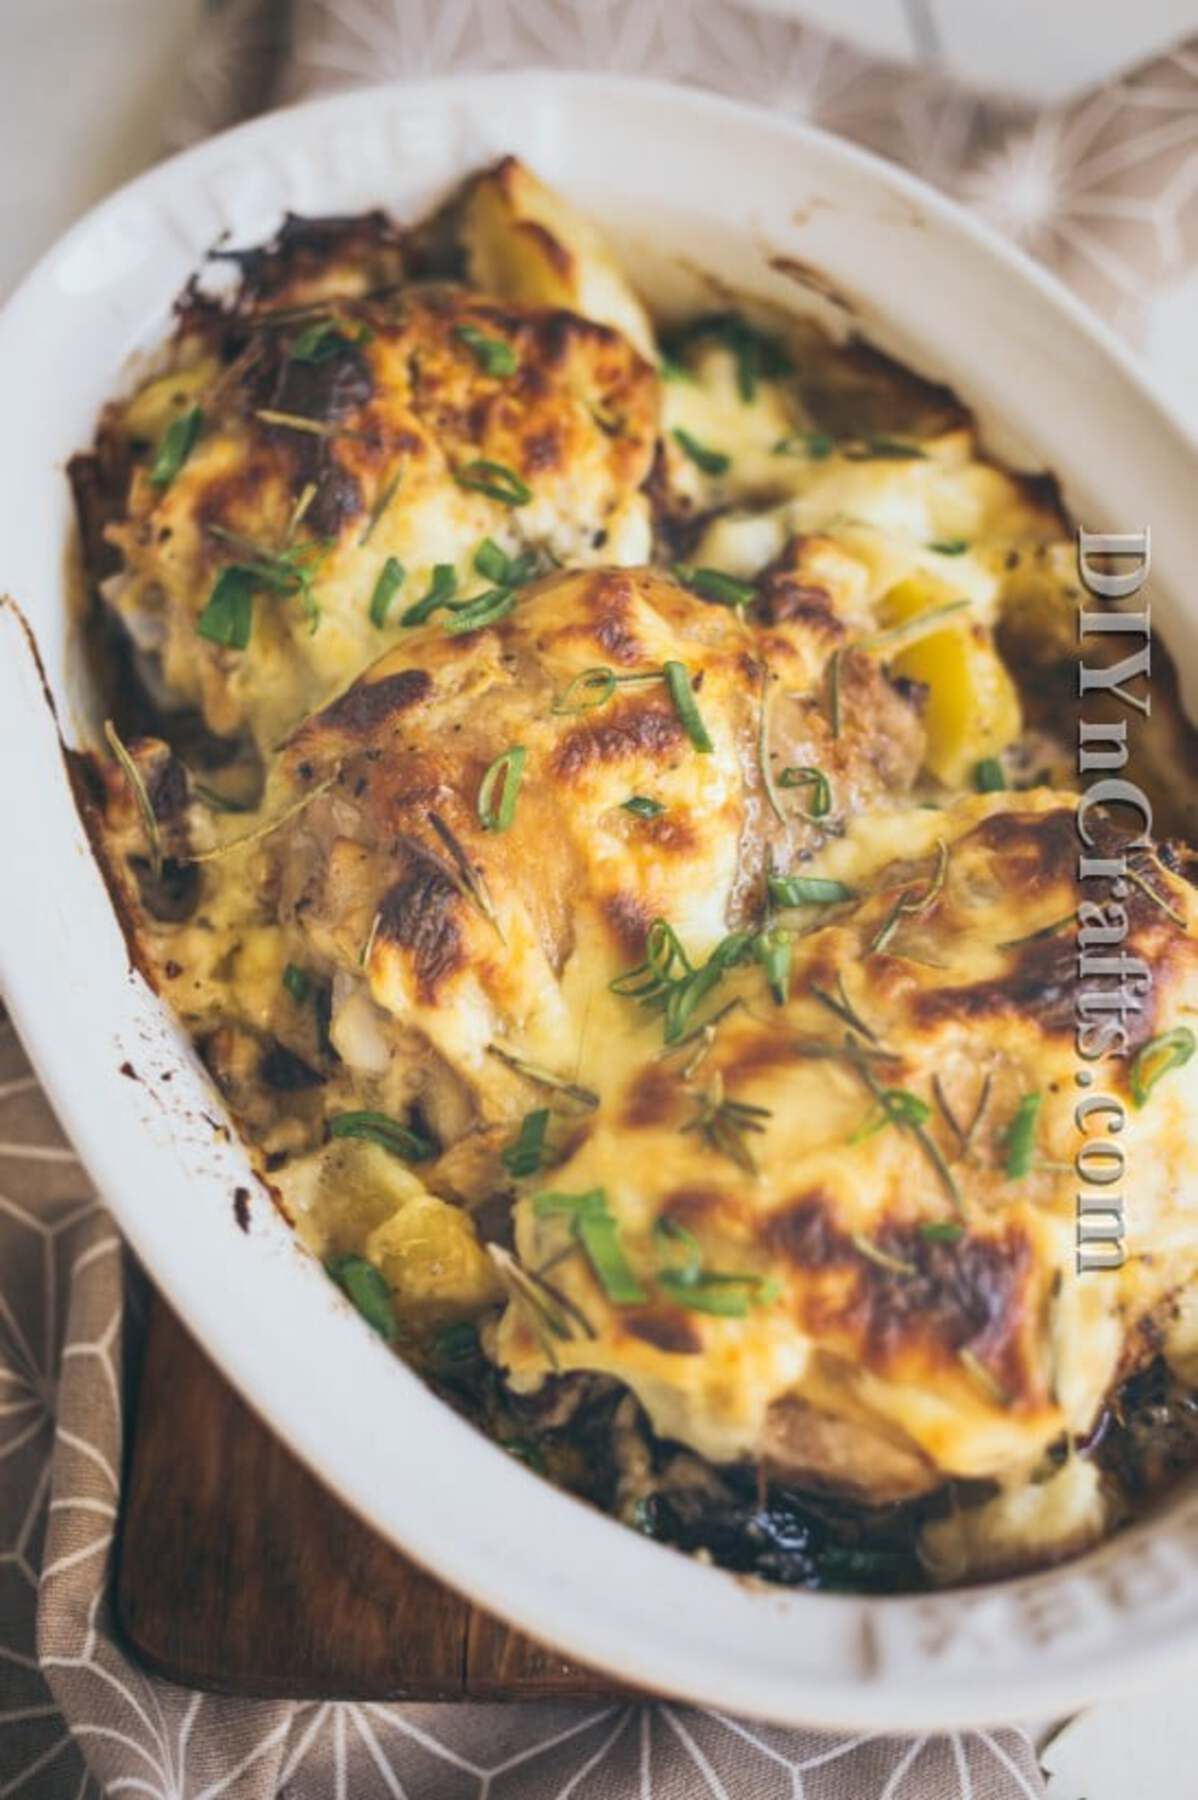 Chicken and potatoes in baking dish